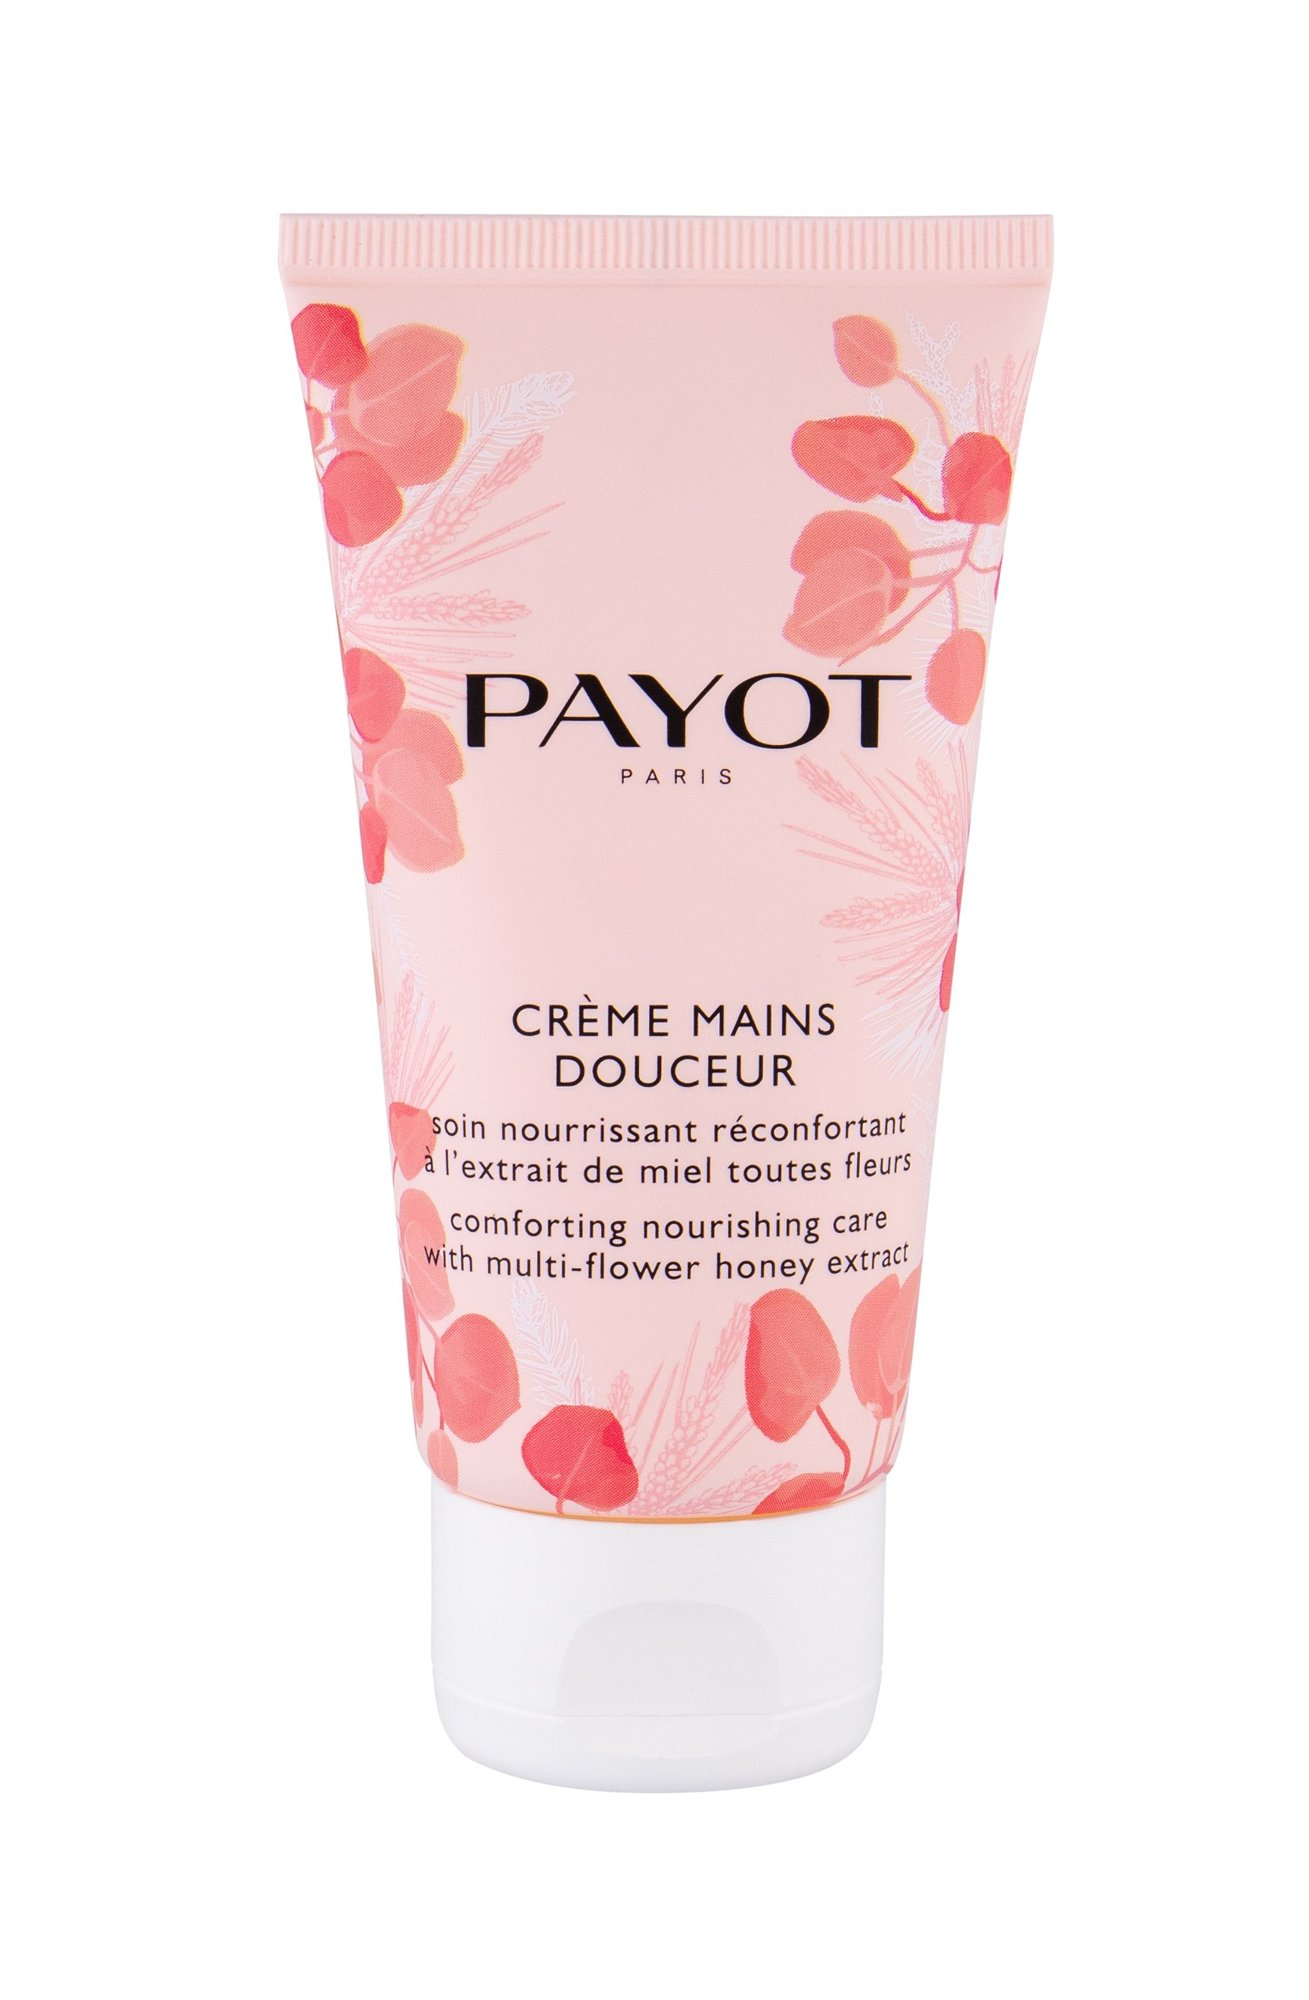 PAYOT Creme Mains Douceur Hand Cream 75ml